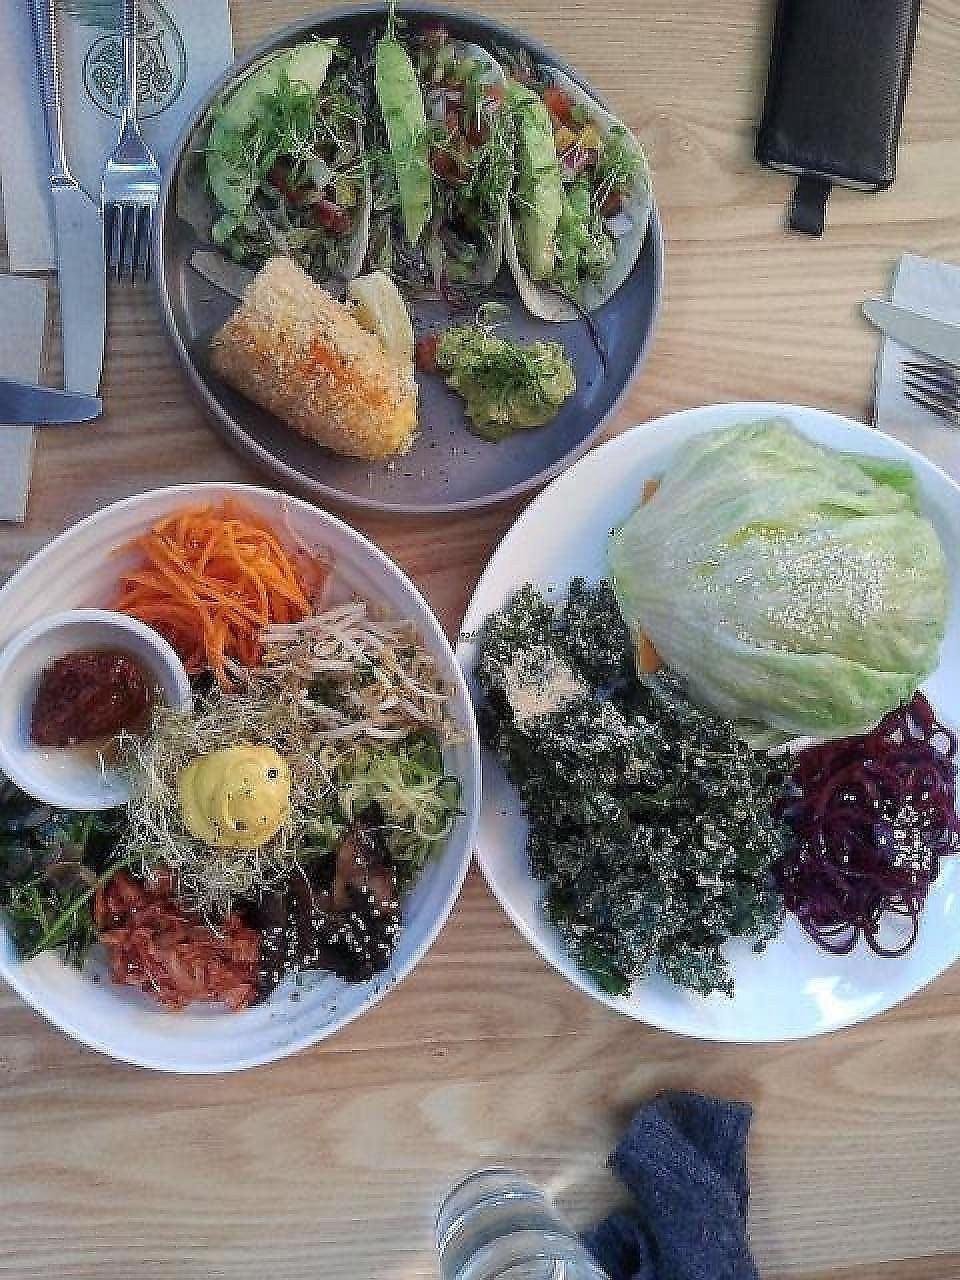 """Photo of Little Bird Organics - Ponsonby  by <a href=""""/members/profile/Plantpower"""">Plantpower</a> <br/>Selection of 3 lunches.  <br/> October 18, 2014  - <a href='/contact/abuse/image/44981/282863'>Report</a>"""